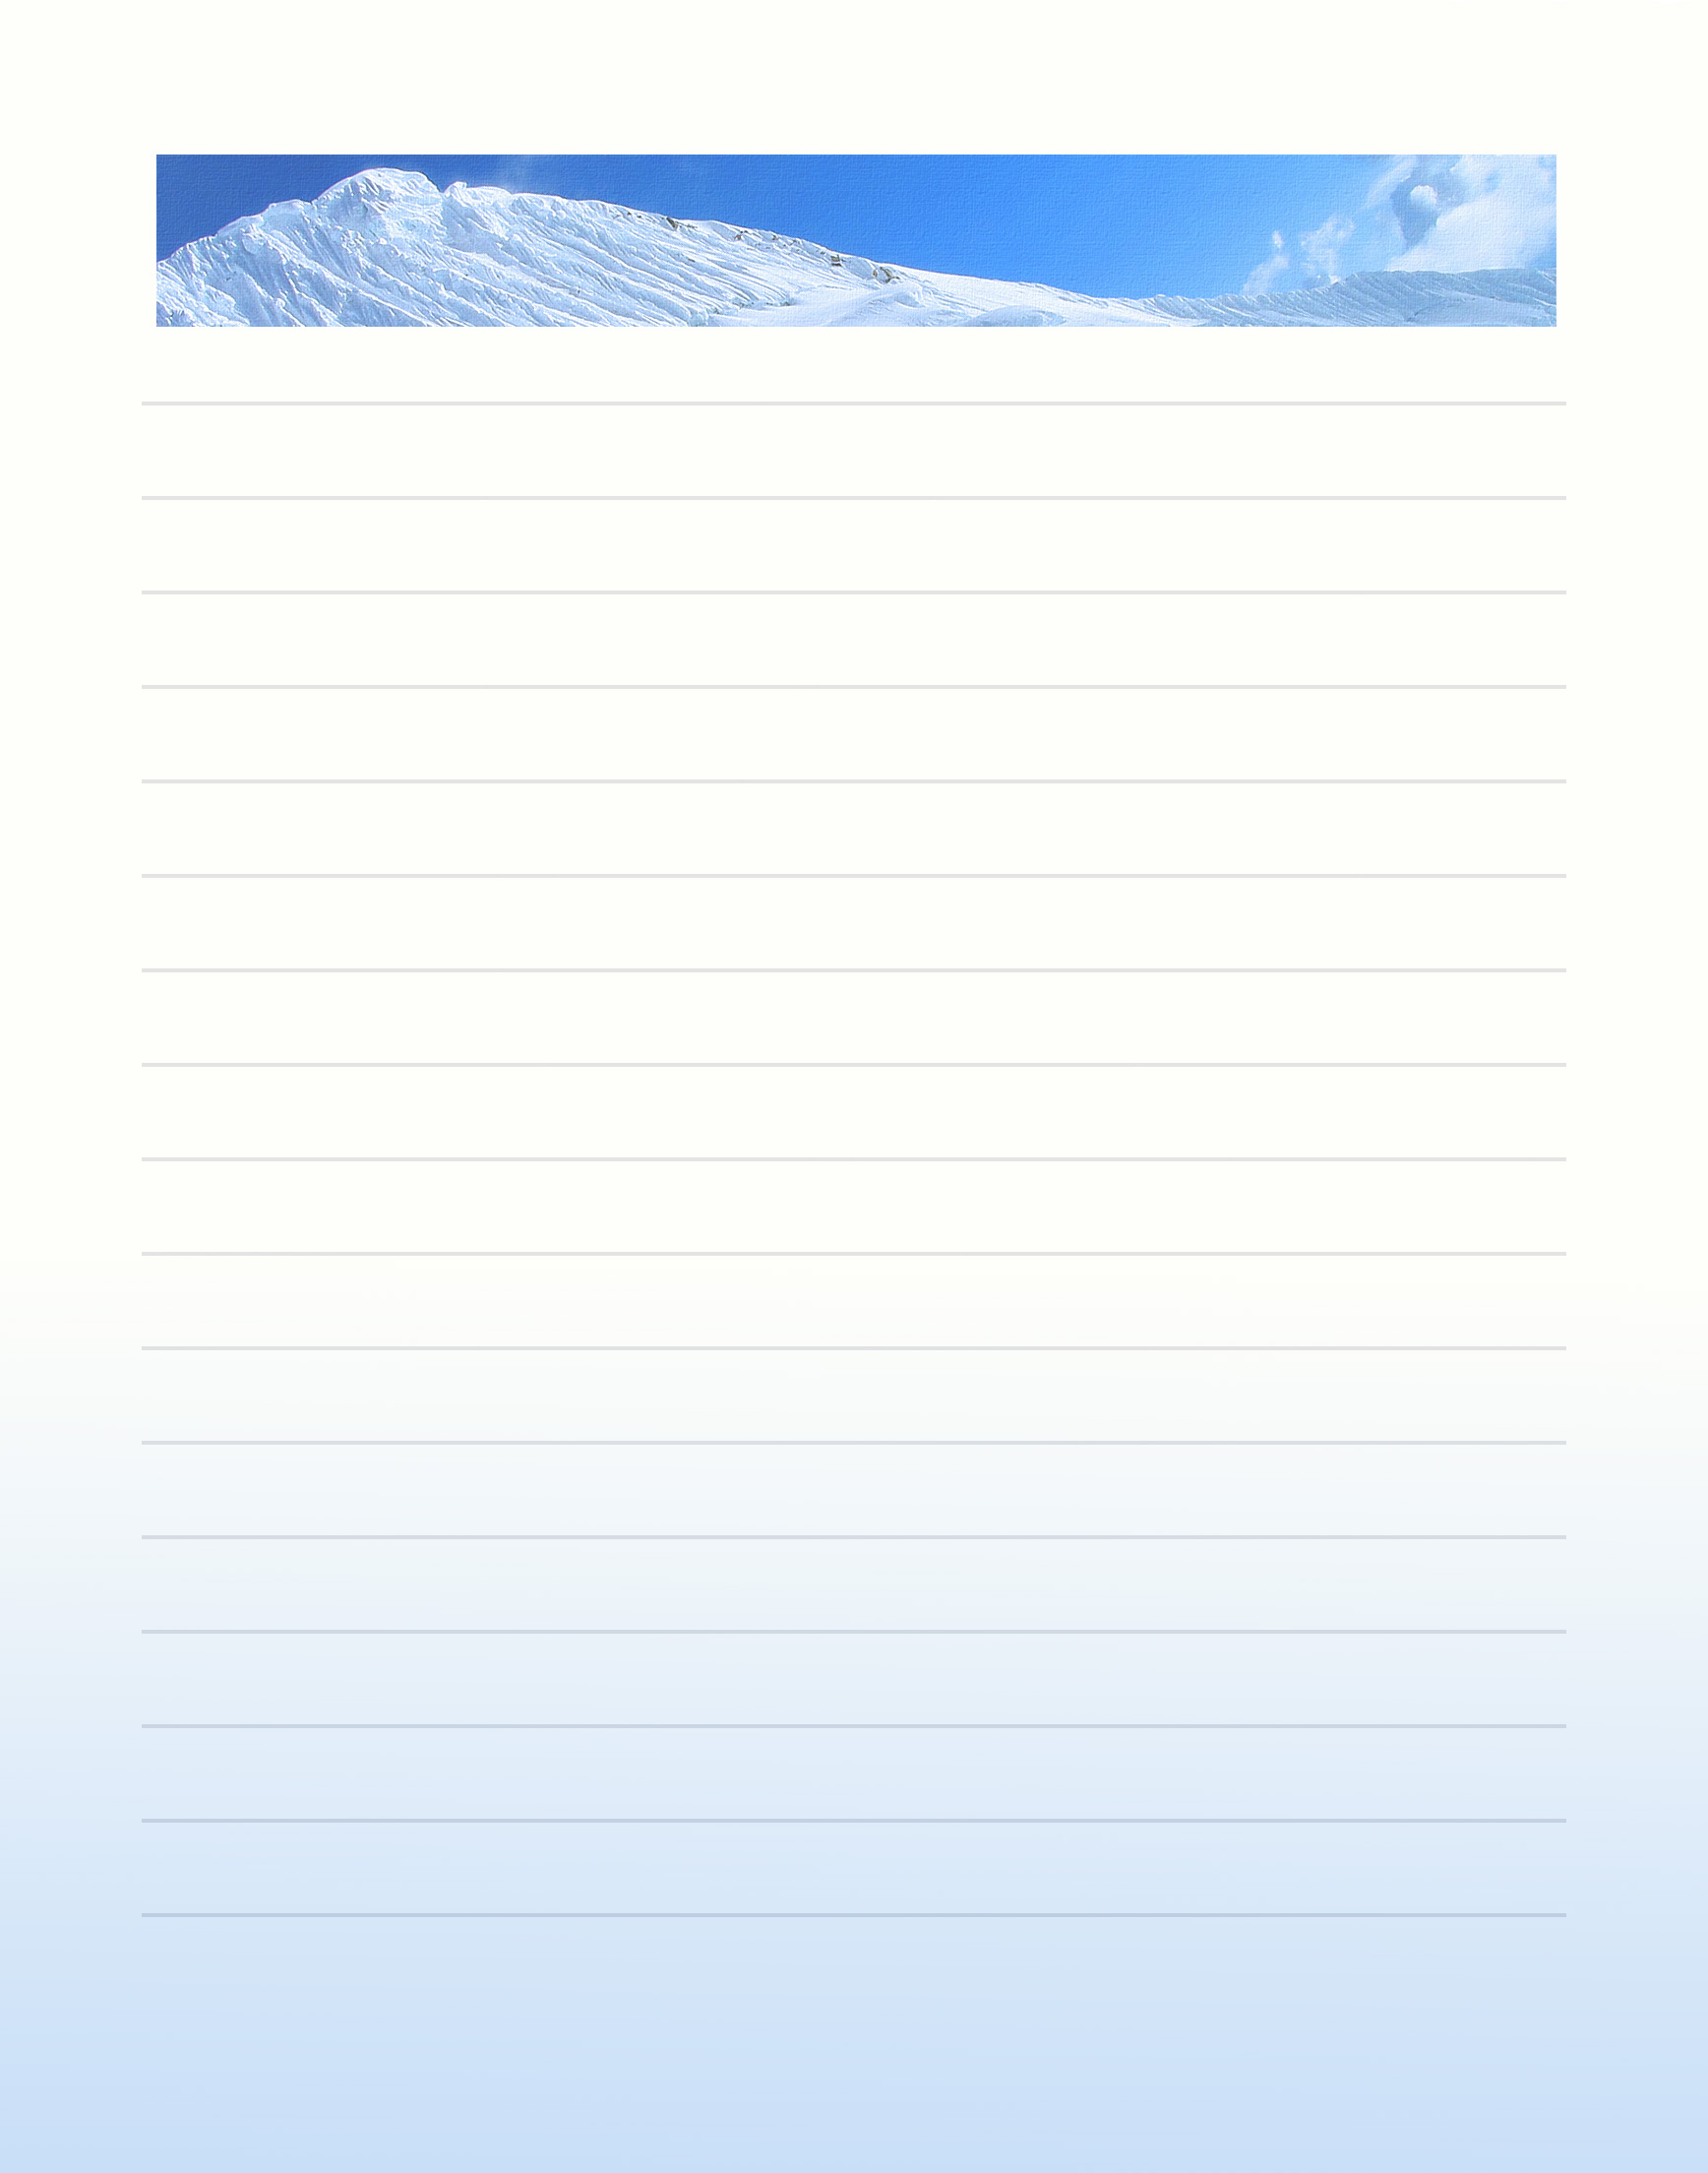 012 Winter Free Printable Stationery Template ~ Ulyssesroom - Free Printable Lined Stationery